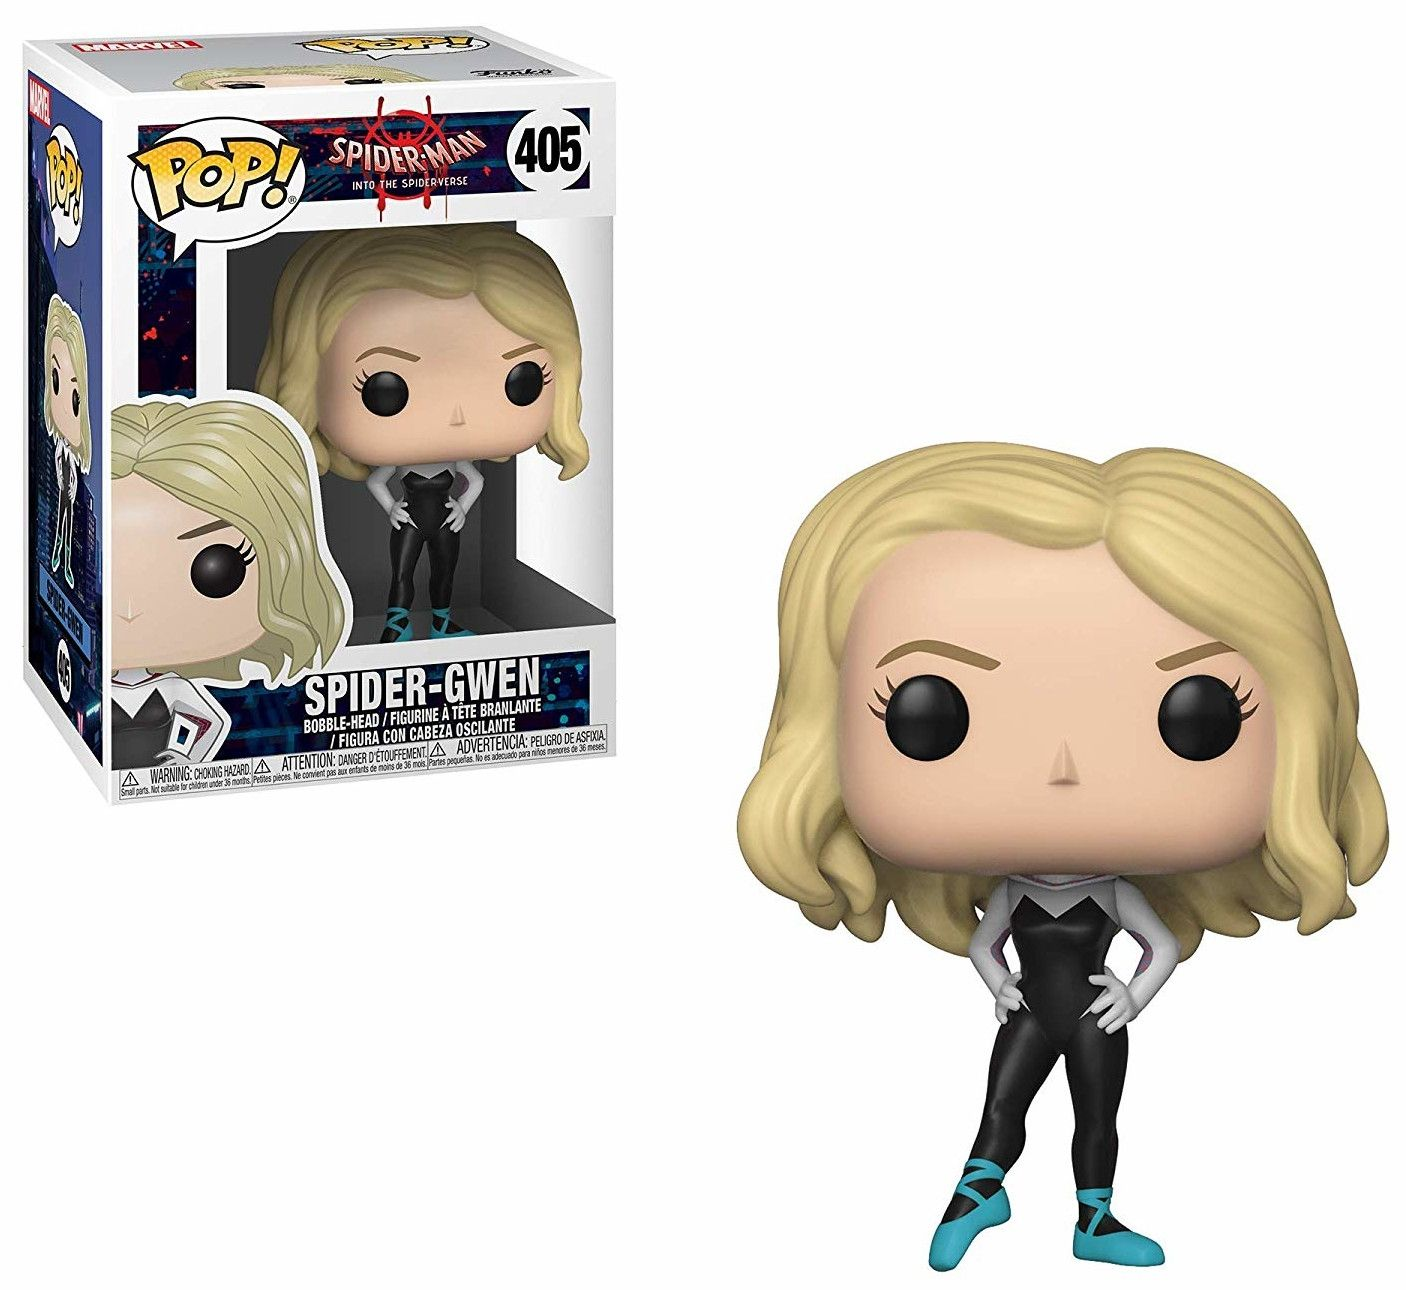 Фигура Funko POP! Spider-Man: Into the Spider-Verse - Spider-Gwen, #405 - 2